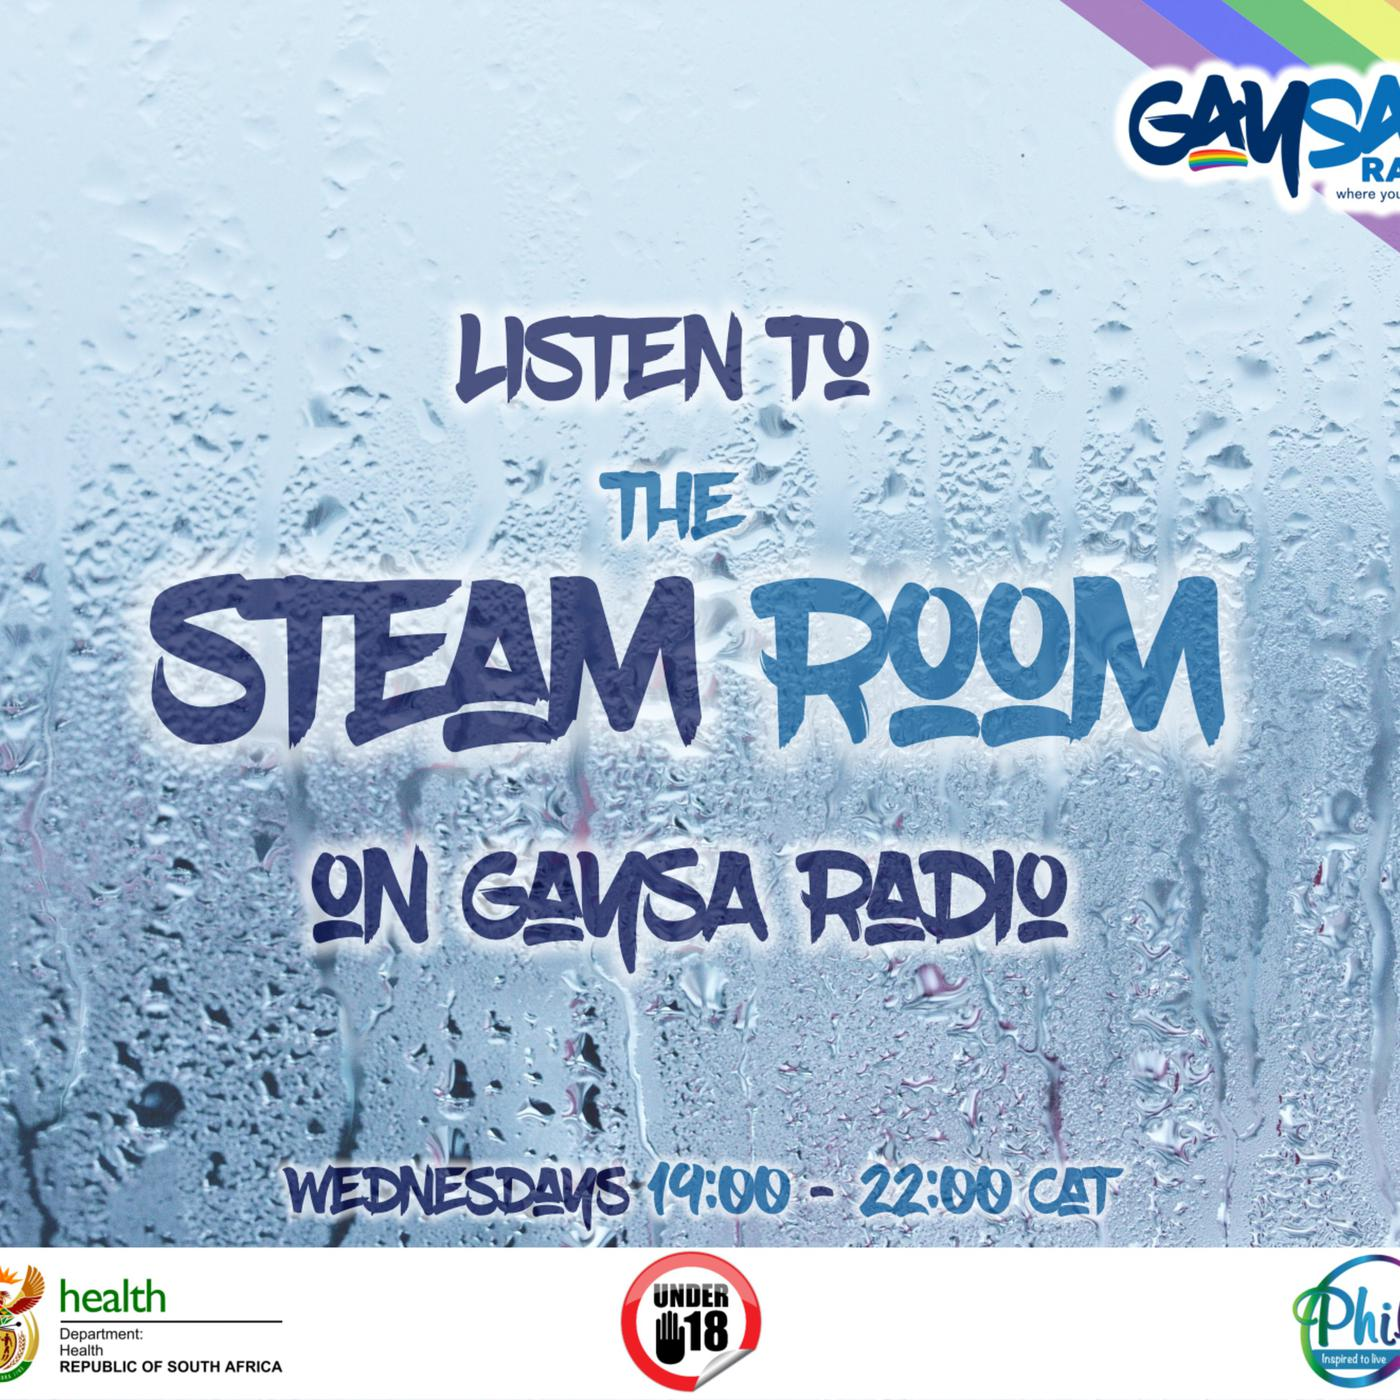 GaySA Radio Presents: The Steam Room (podcast) - GaySA Radio